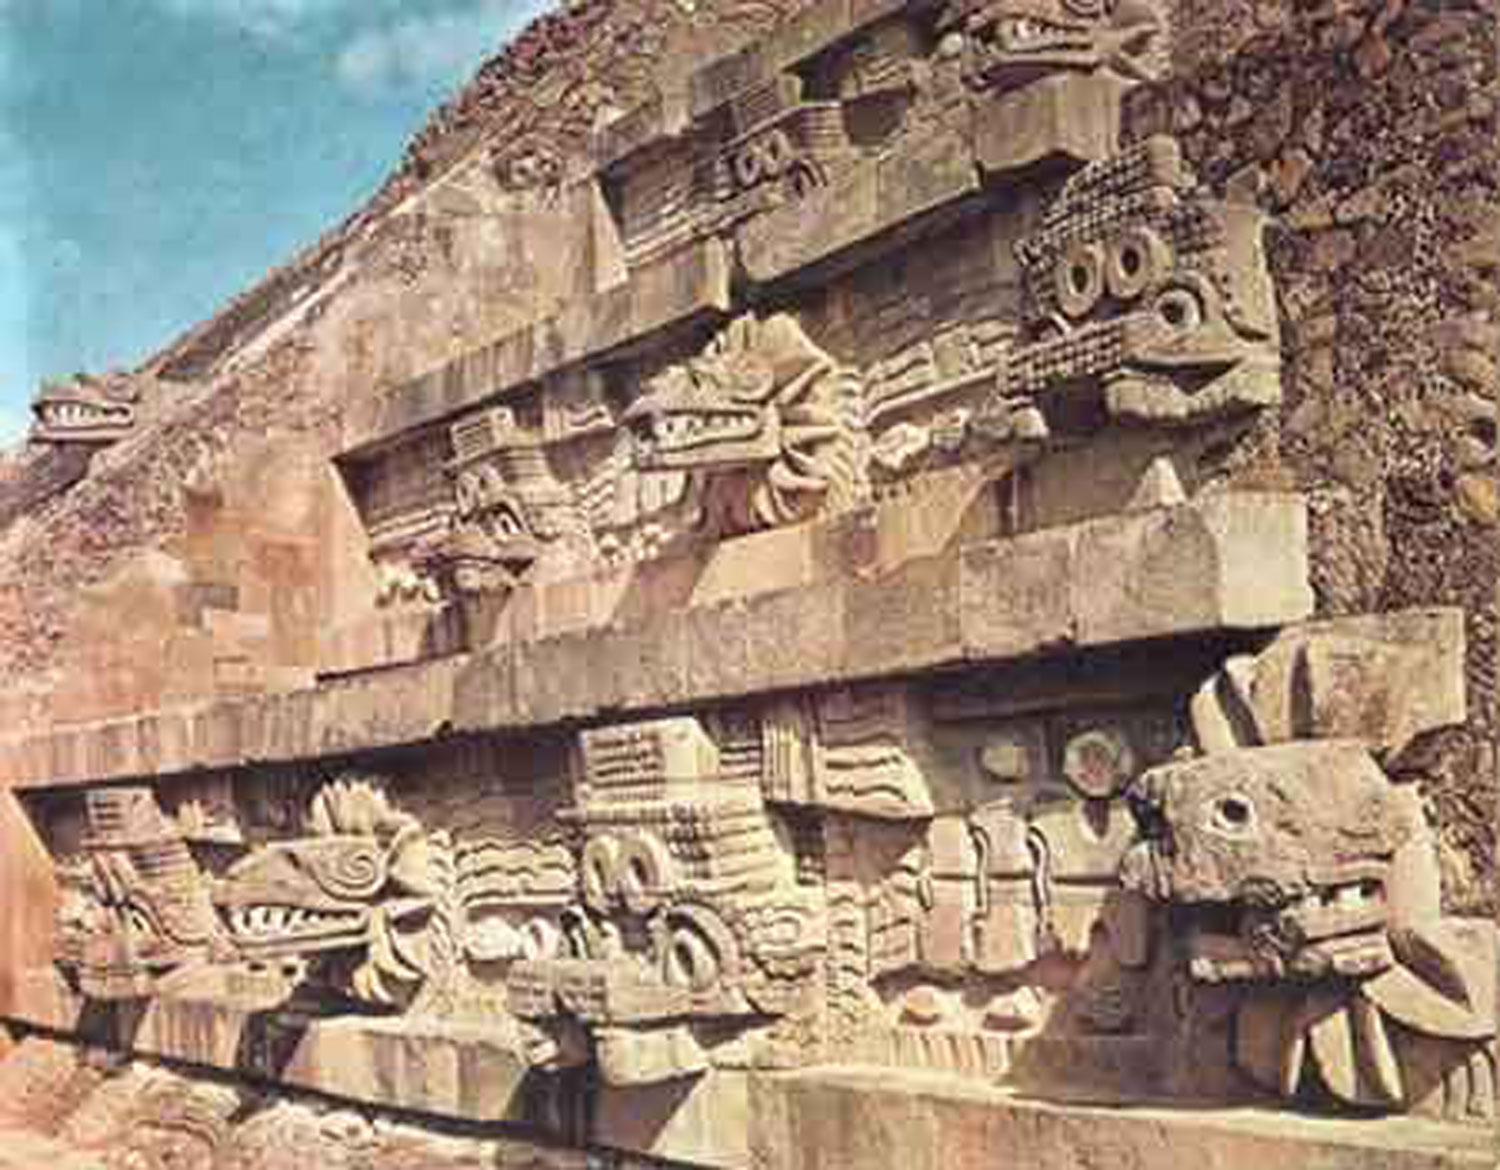 Quetzalcóatl and his avatar Tláloc reliefs alternate on the Temple of the Quetzalcóatl in Teotihuacán. Credit: Pinterest.